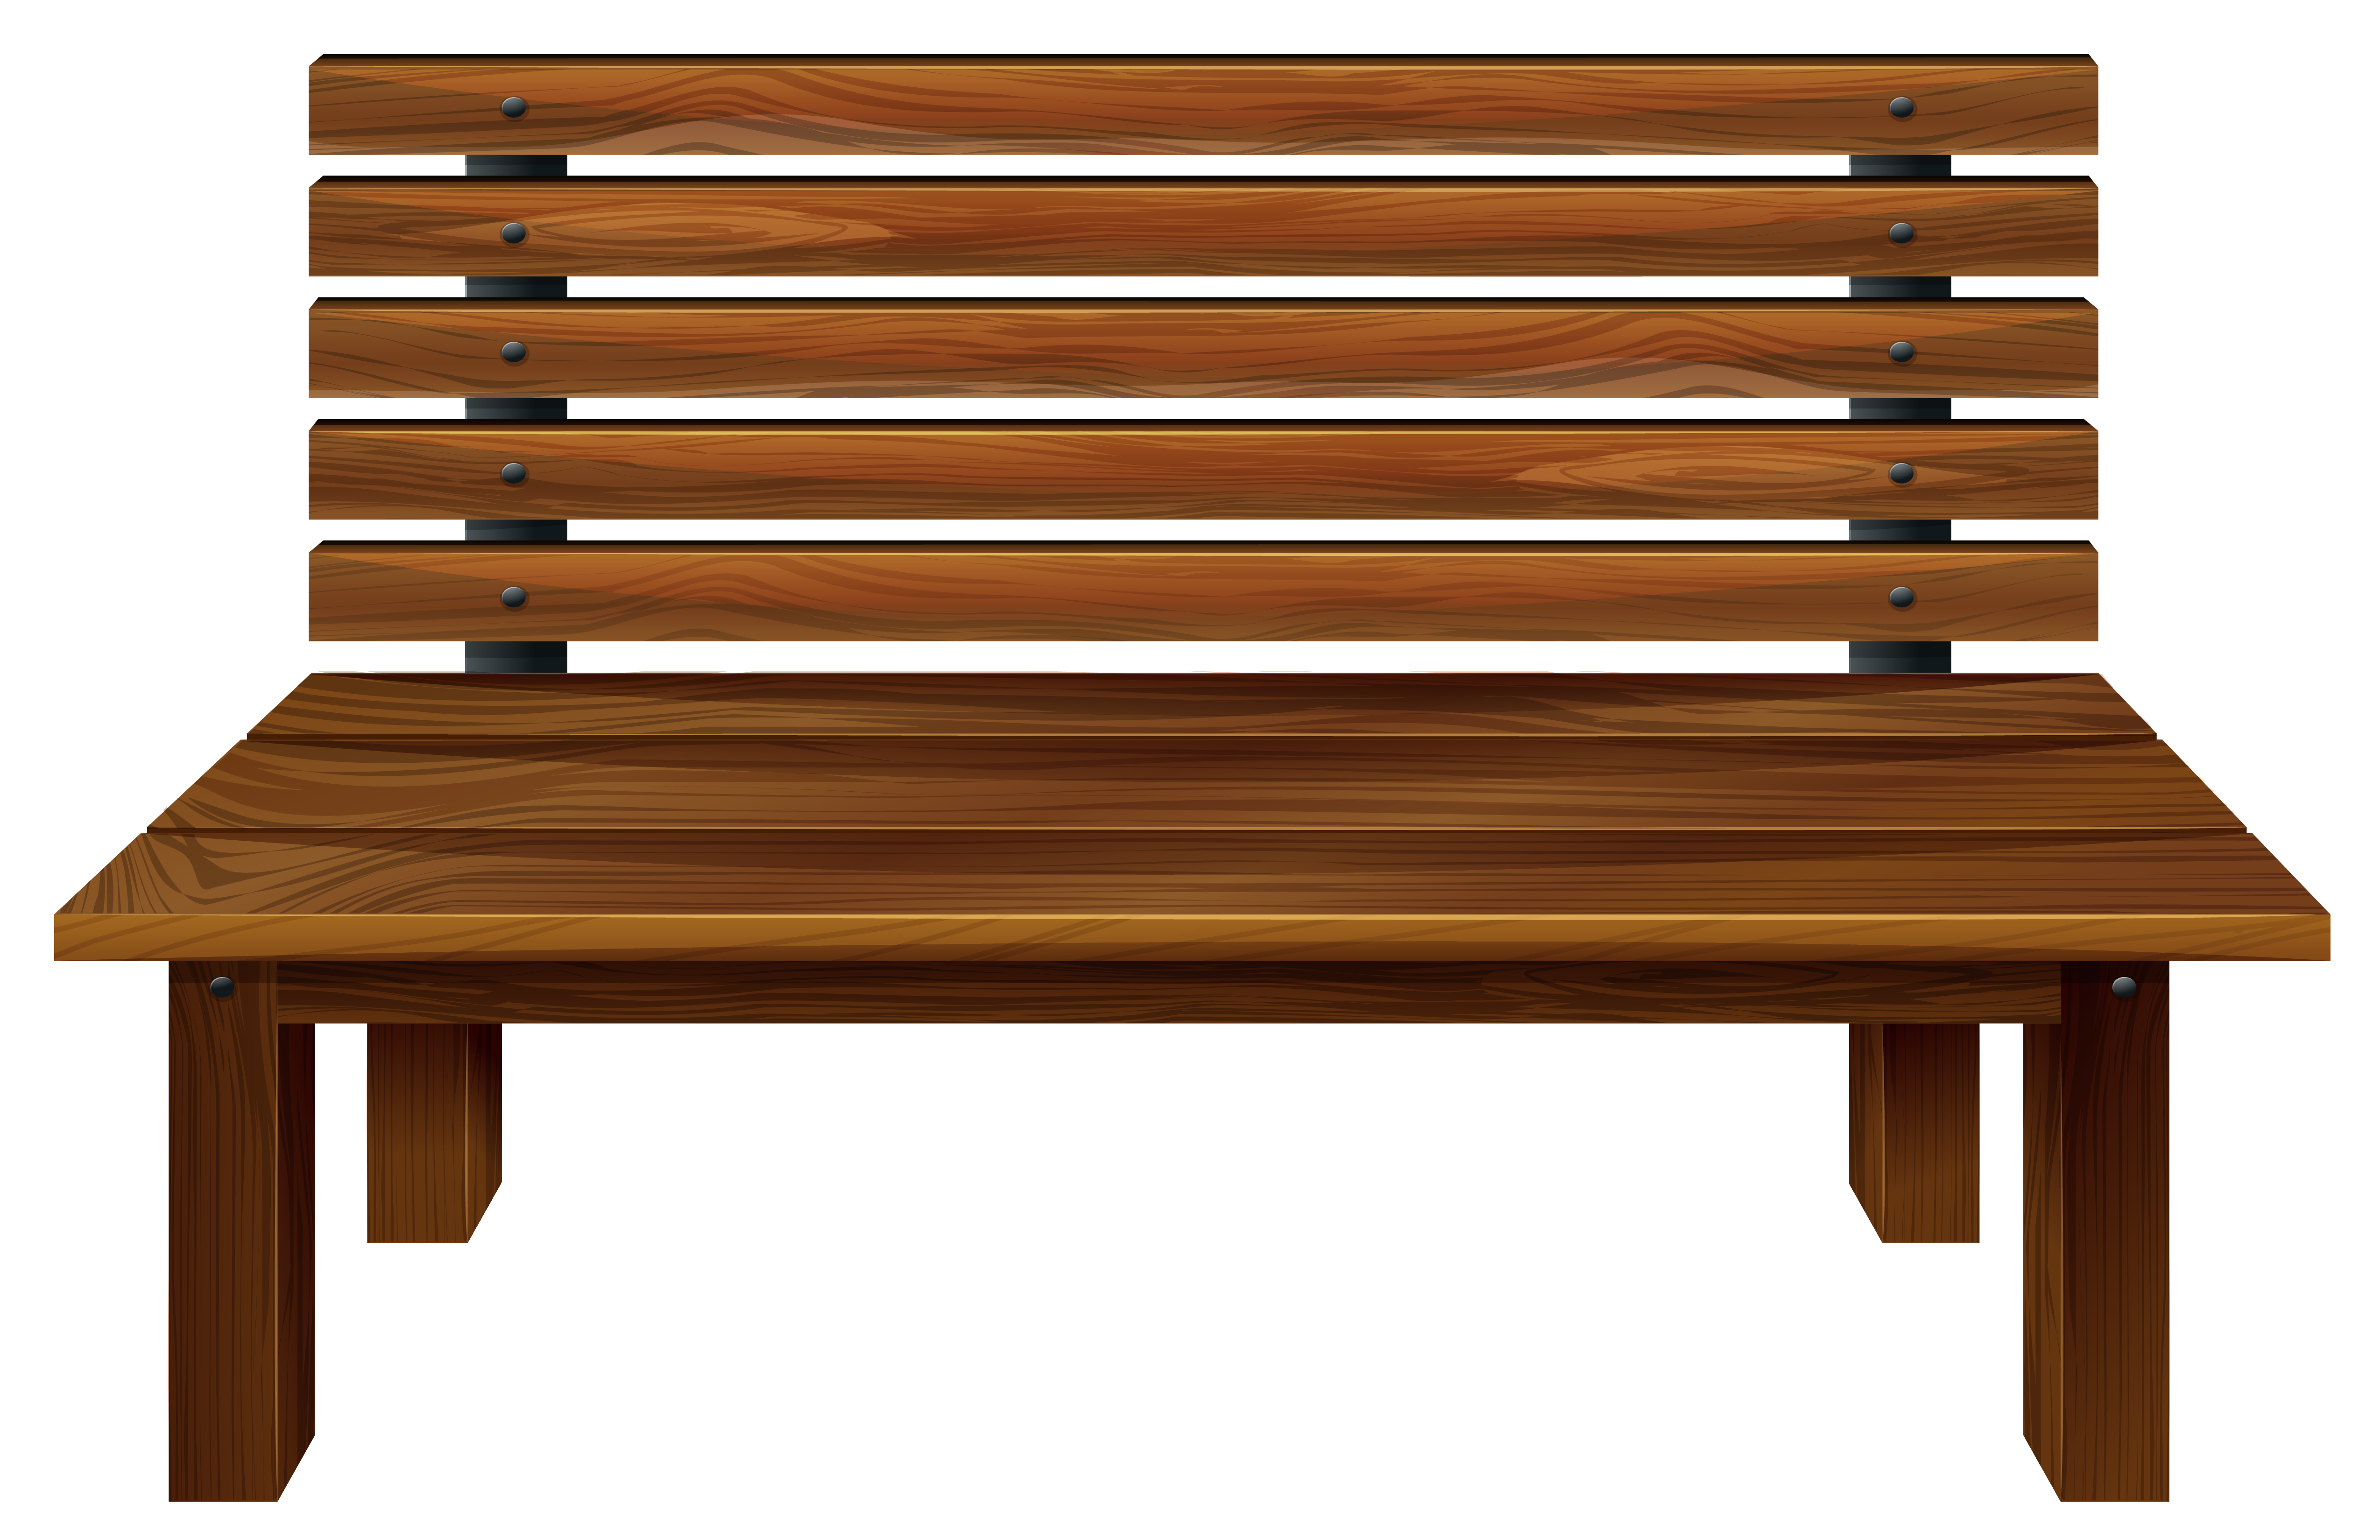 Bench clipart wooden bench. Png image gallery yopriceville